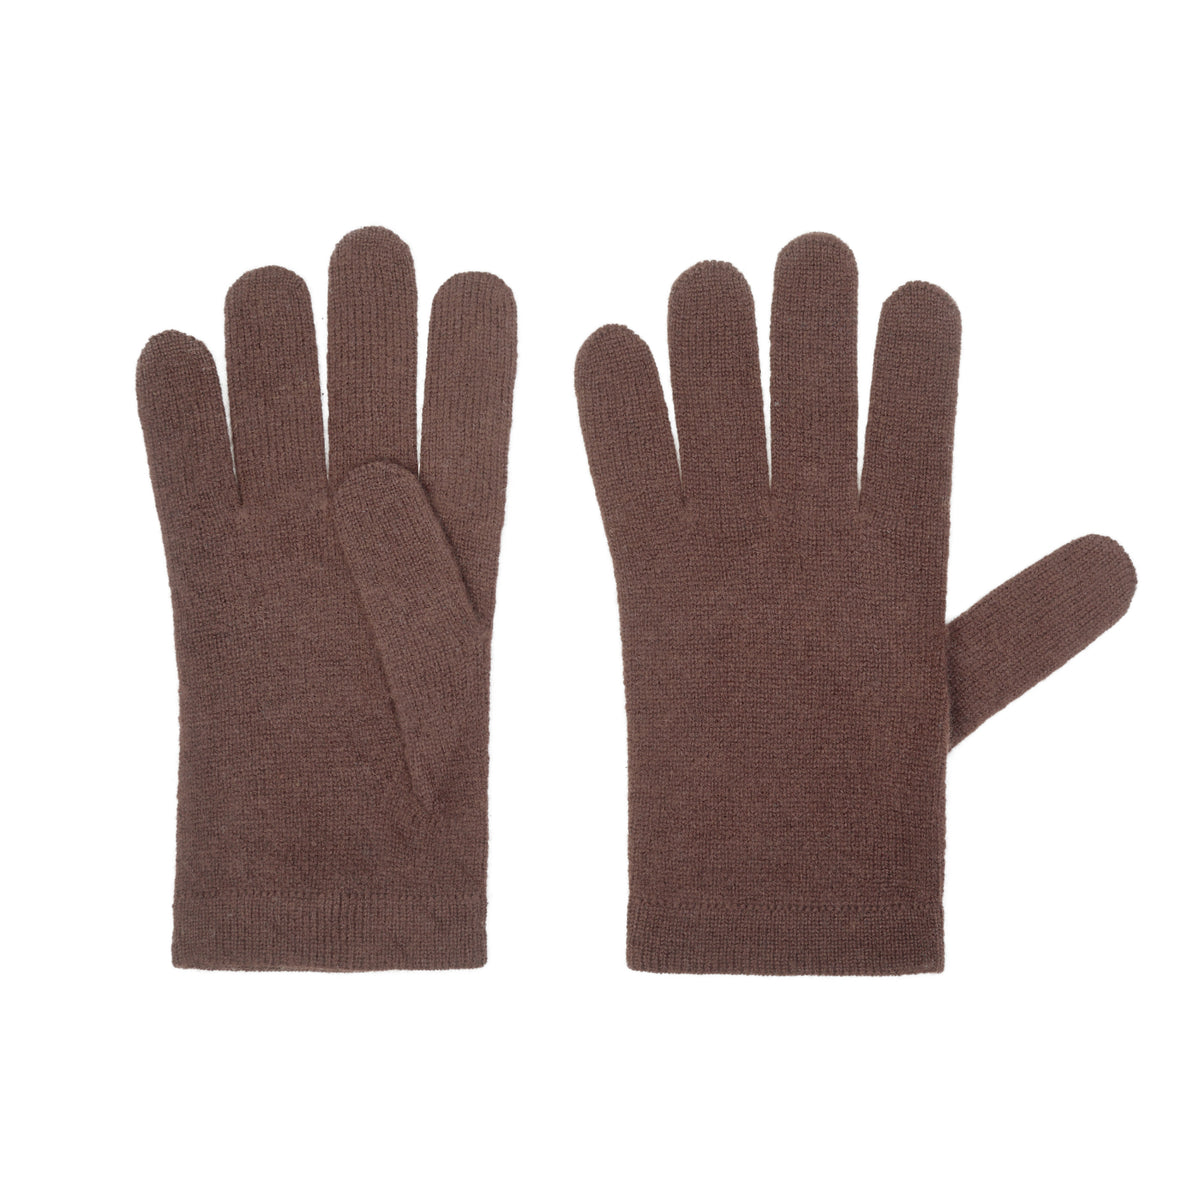 Ladies Organic Chocolate Brown Cashmere Gloves | Shop now at The Cashmere Choice | London